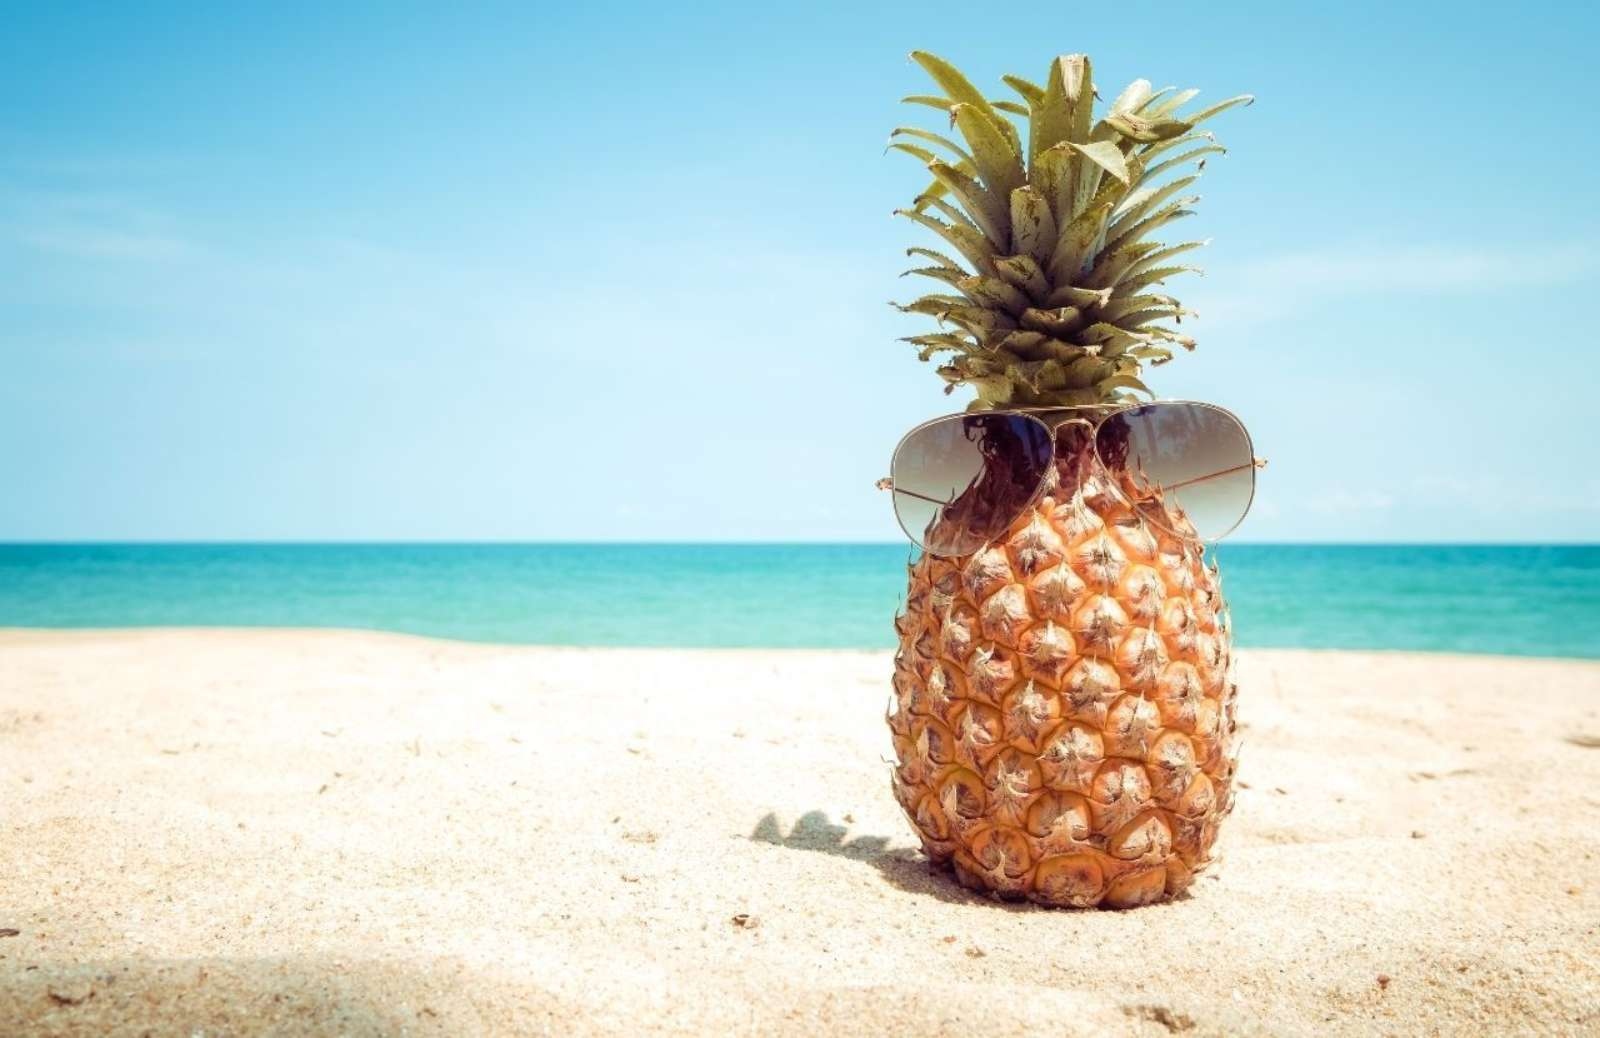 Pineapple wearing subglasses on a sunny beach